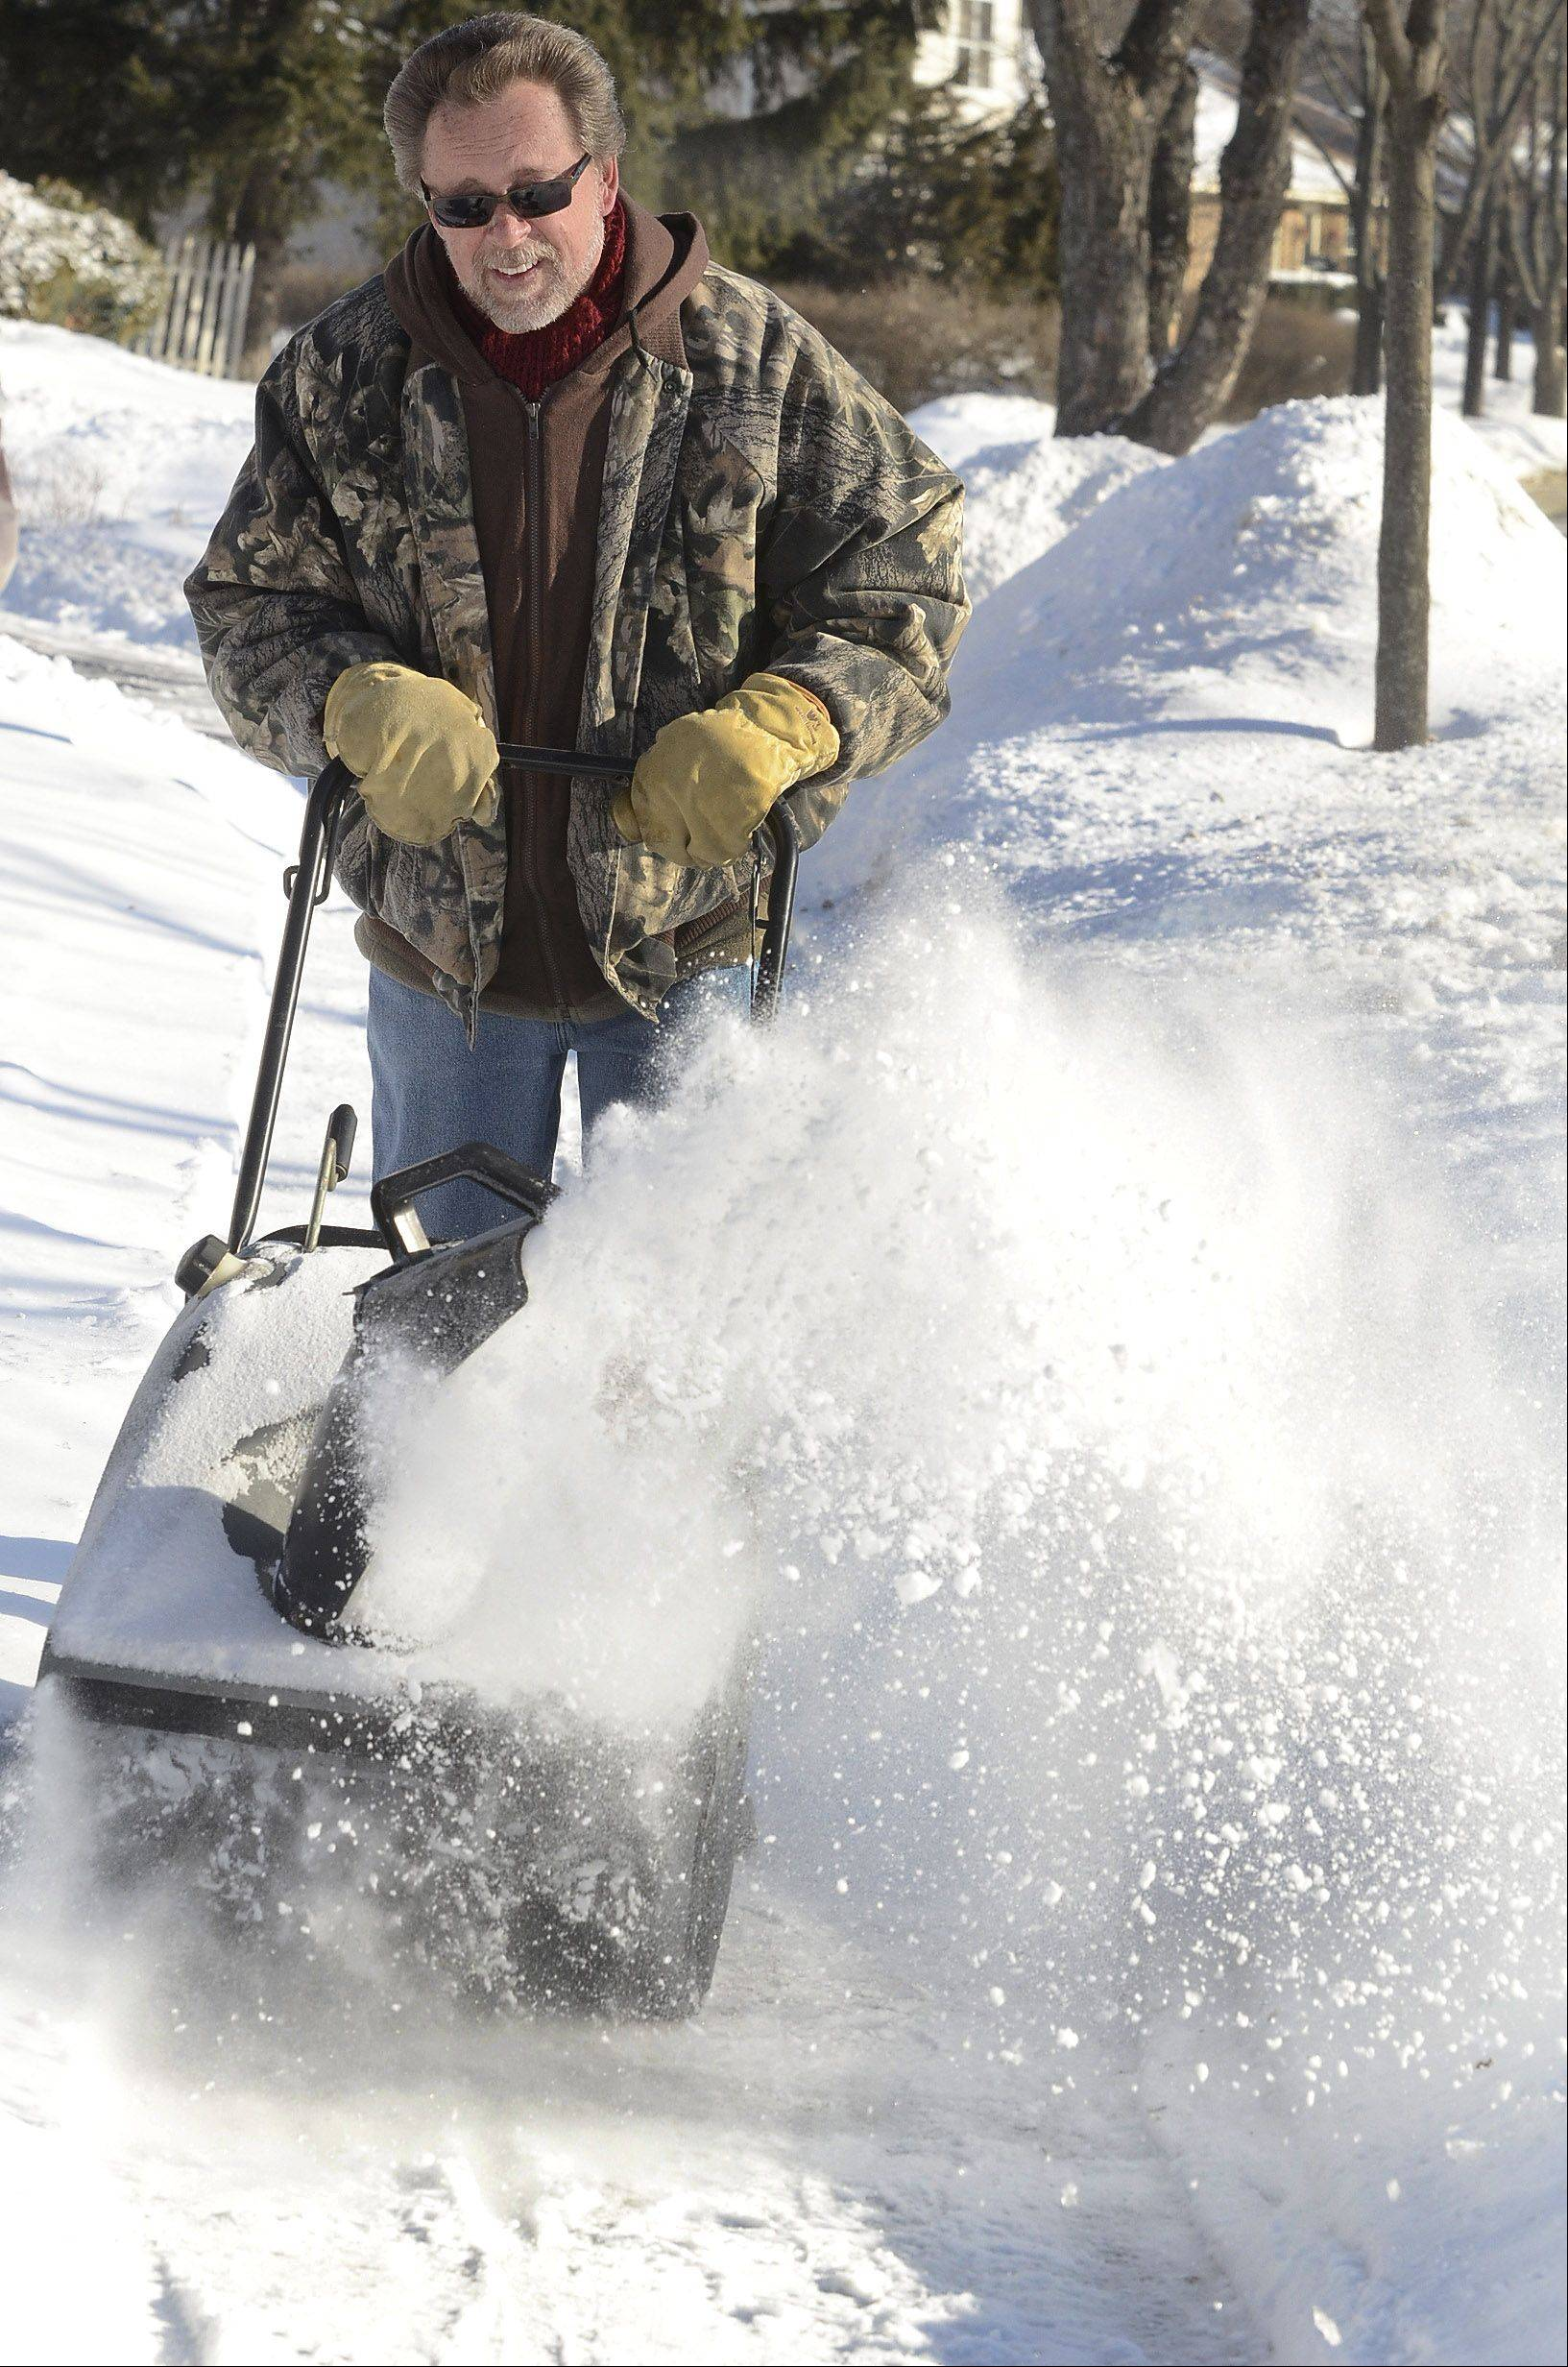 Ray Fossum, of Hanover Park, clears a path in front of his home on Yorkshire Drive. He says he's been keeping up with it this winter because he's now retired and has the time.